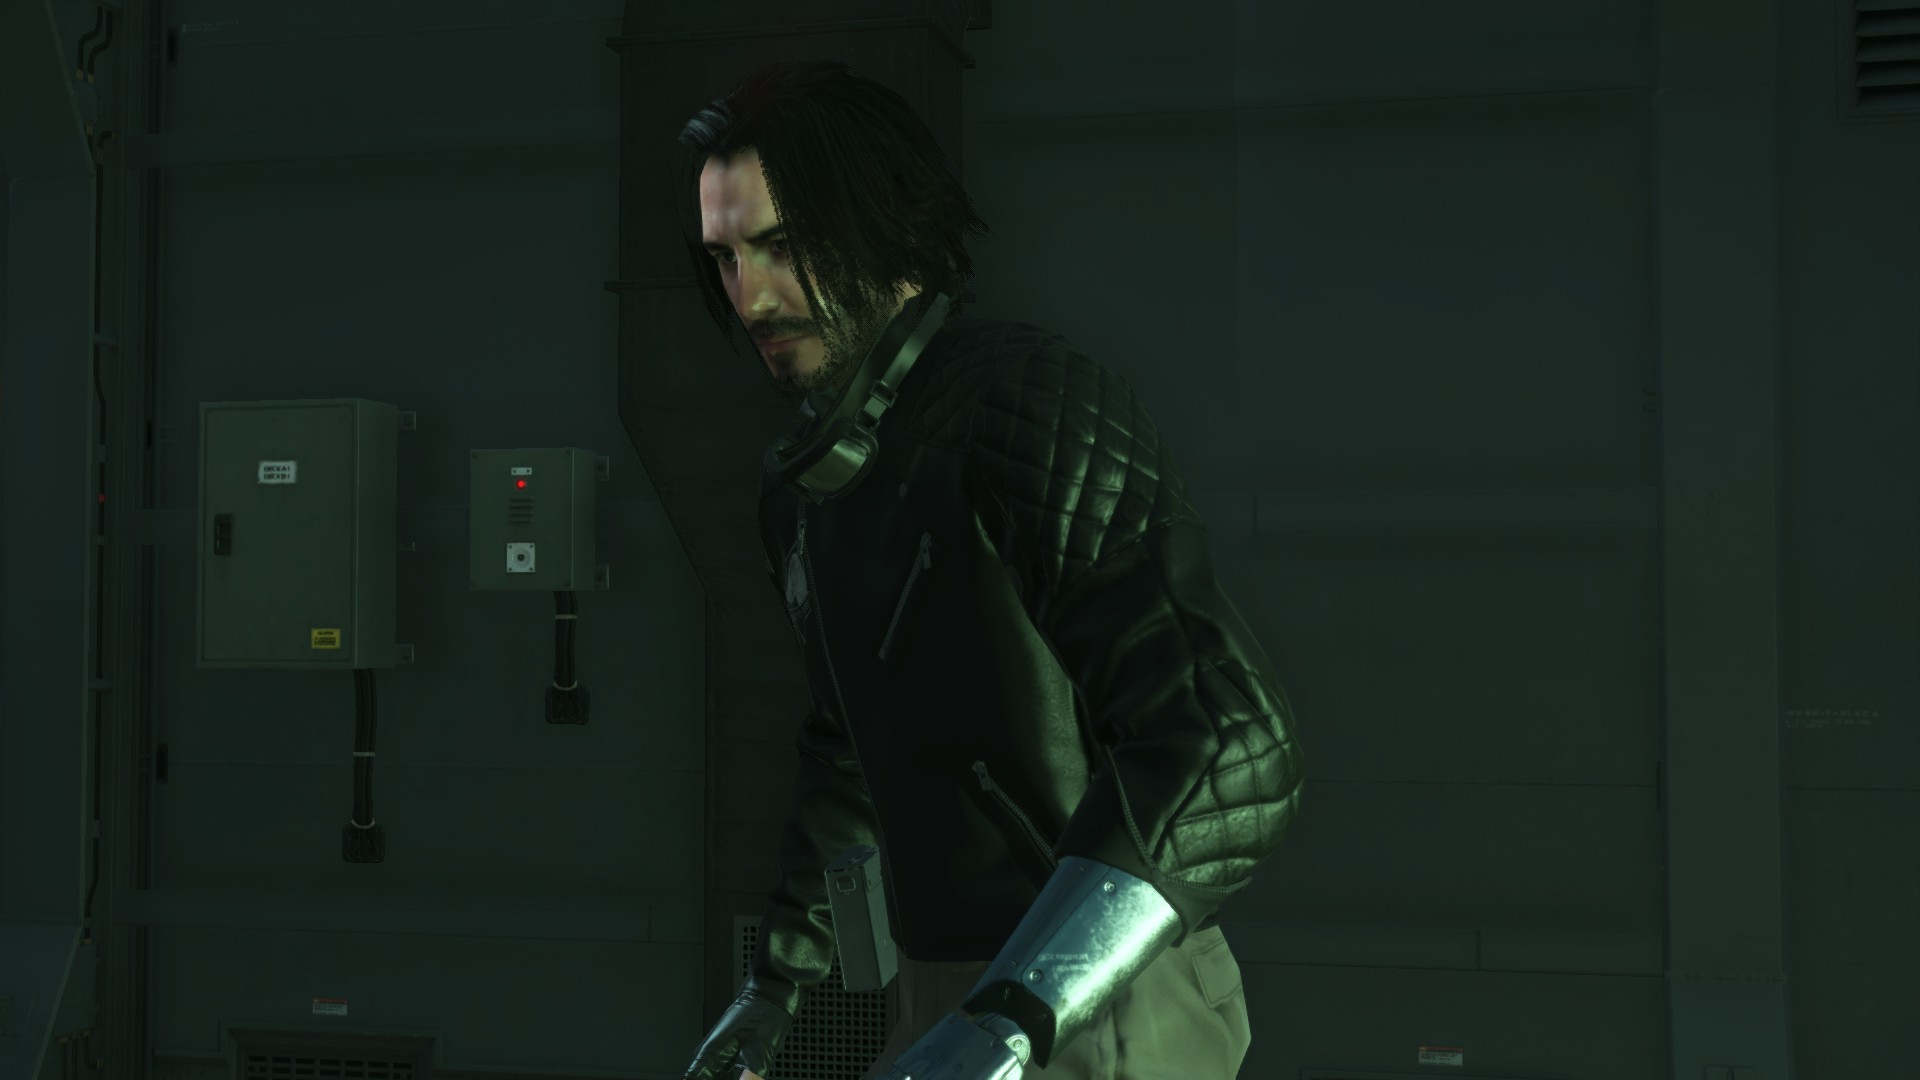 Metal Gear Solid V is featuring Keanu Reeves: